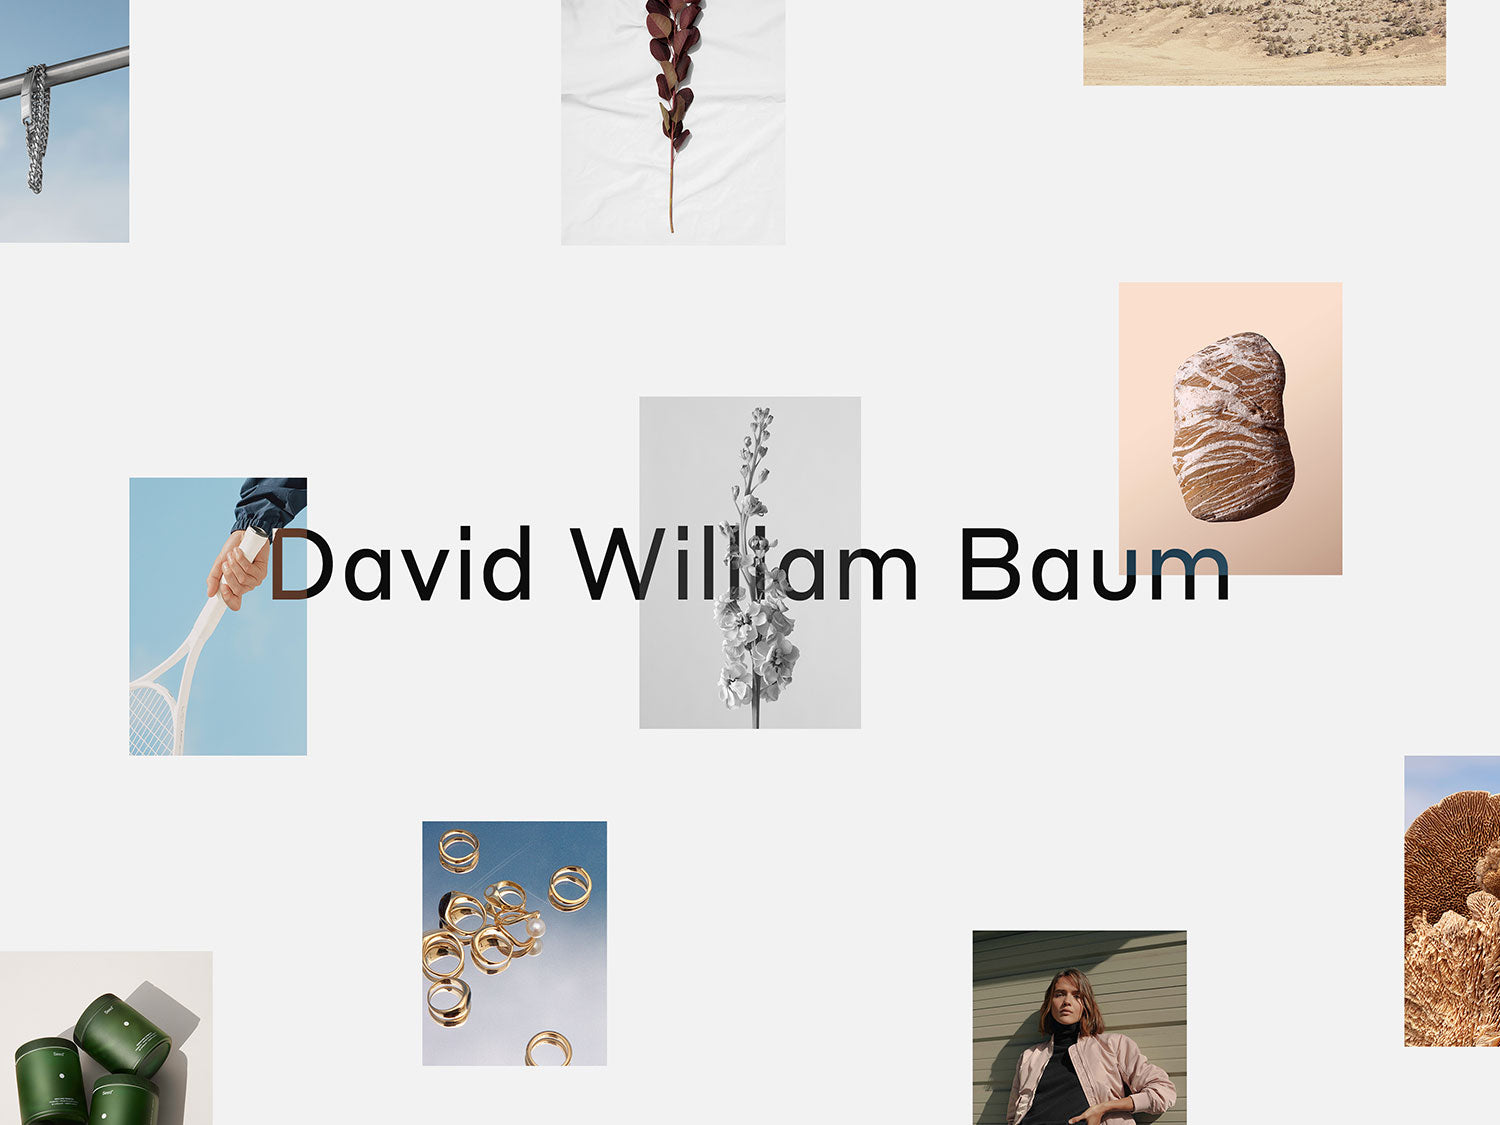 Ben Mingo: David William Baum